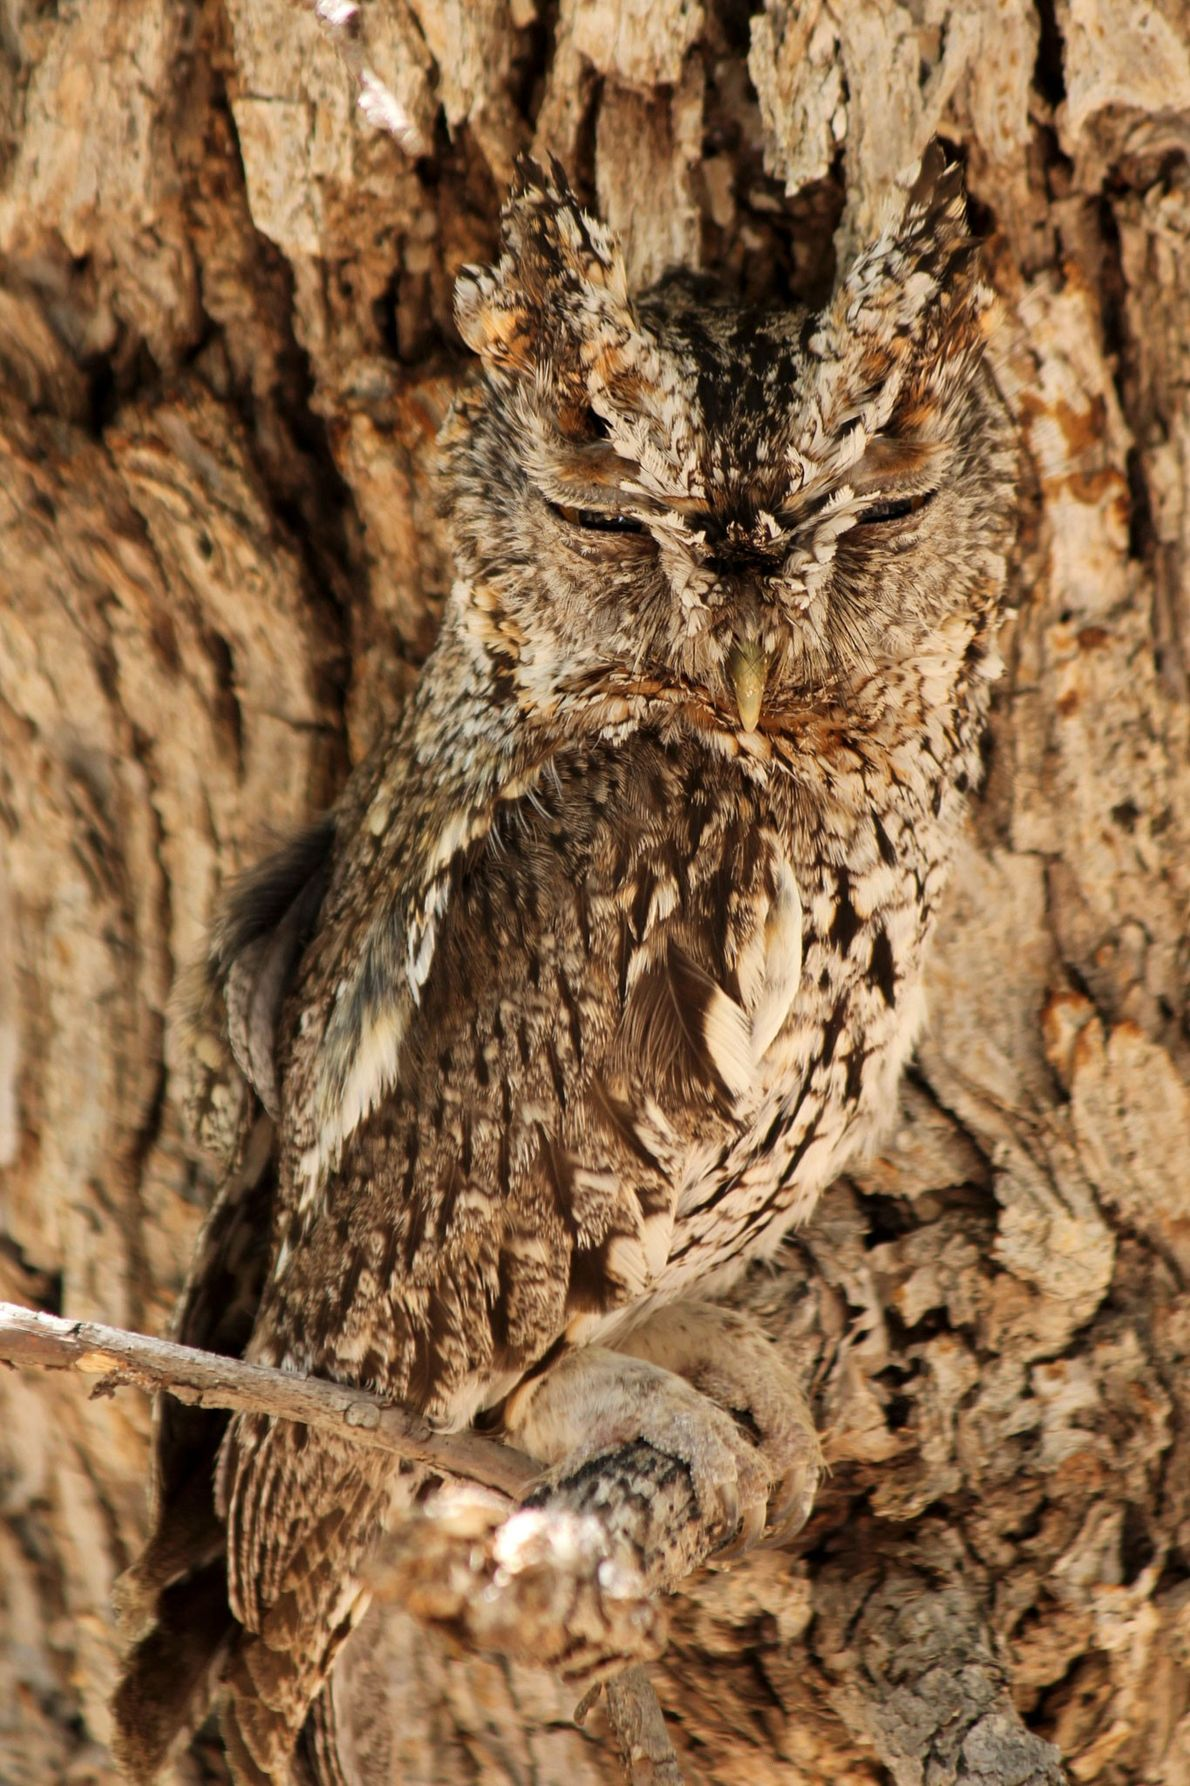 Whiskered screech owl. Cave Creek Canyon, Arizona, United States